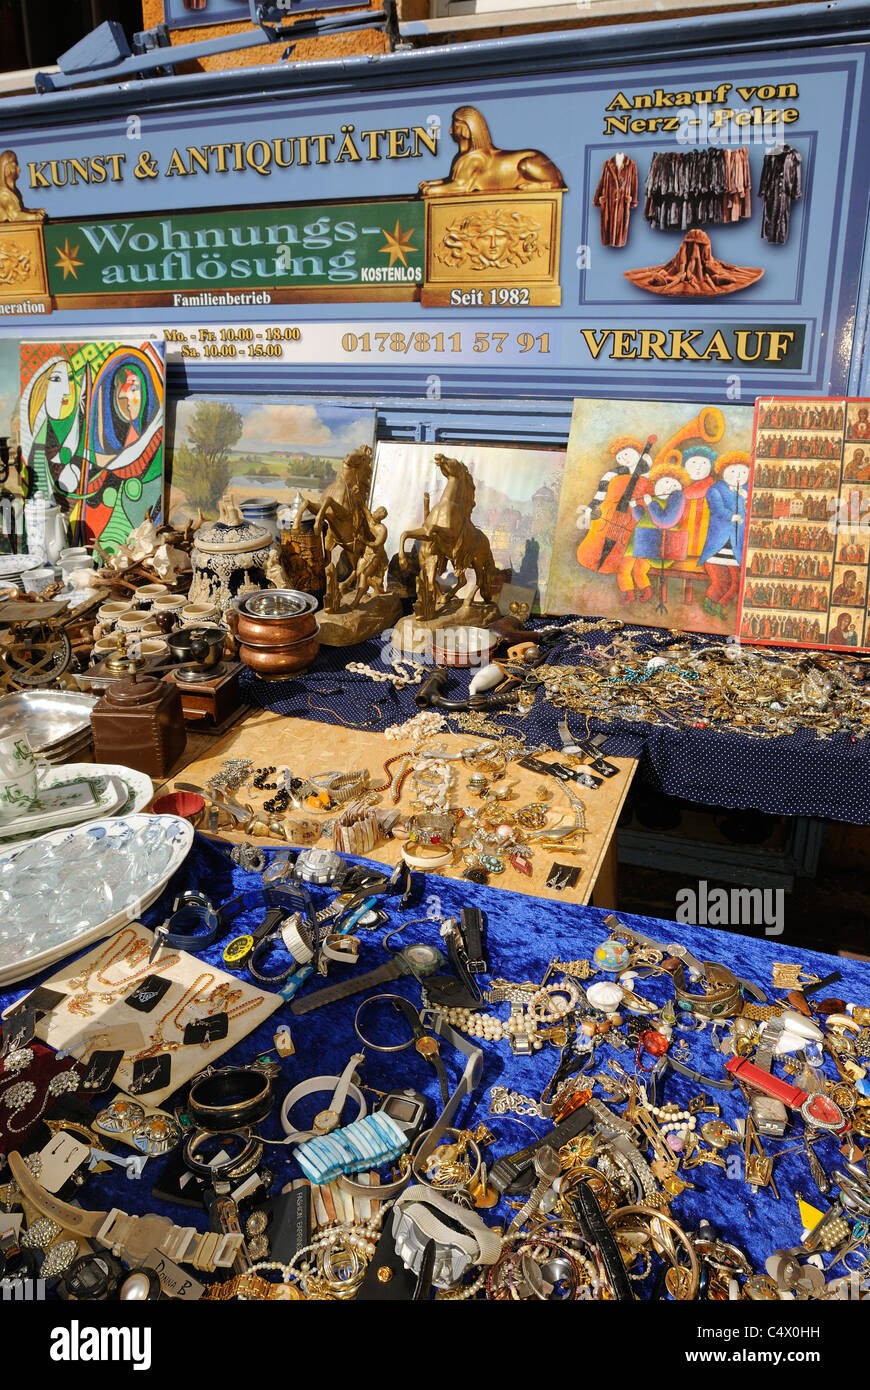 Flea Market Art And Antiques Second Hand Store Popular Street